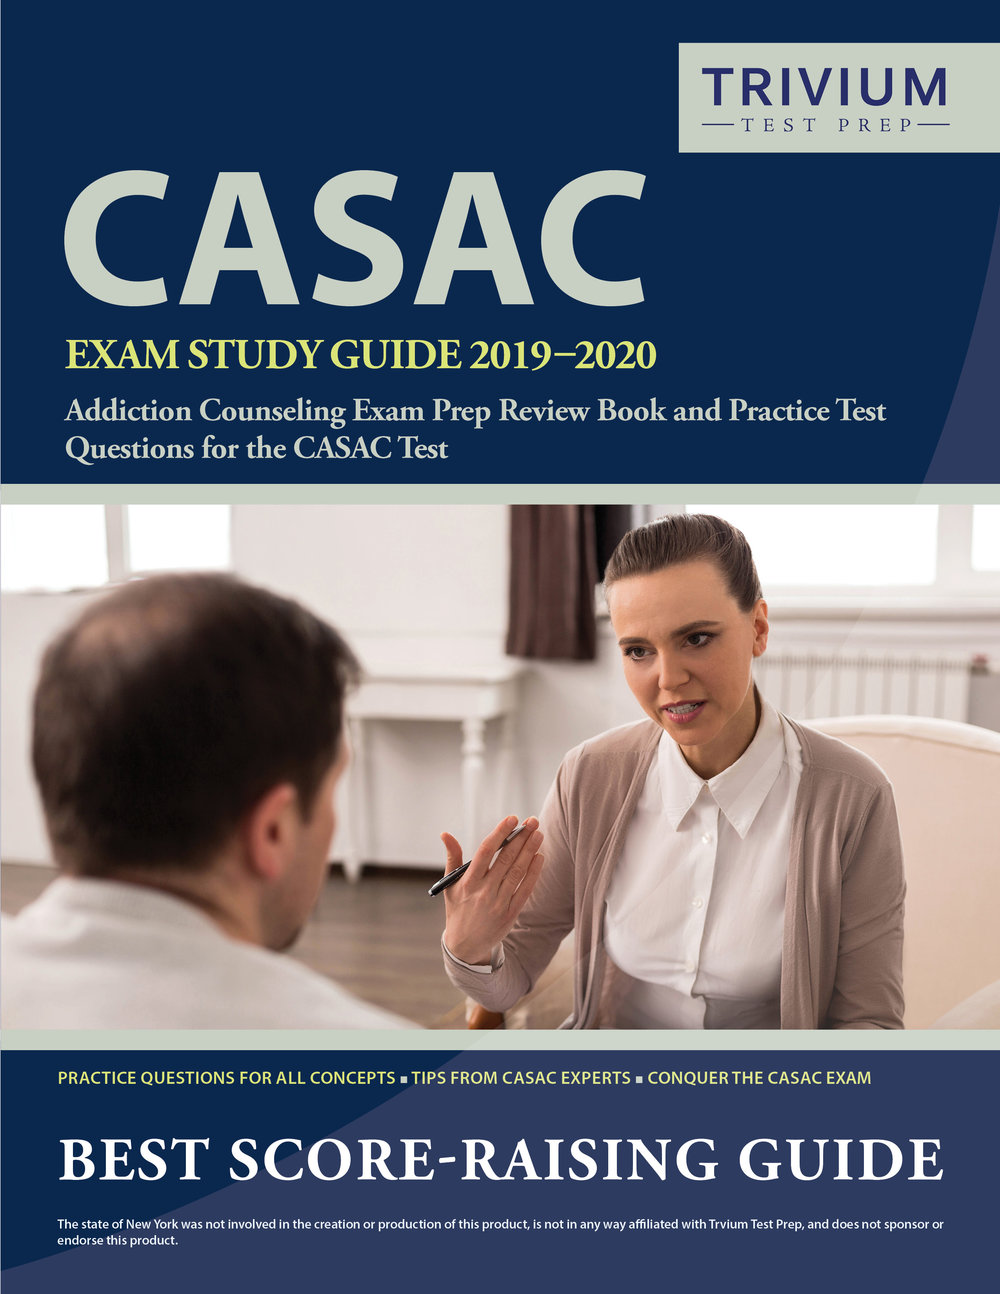 CASAC Exam Study Guide Prep Review Book and Practice Test Questions